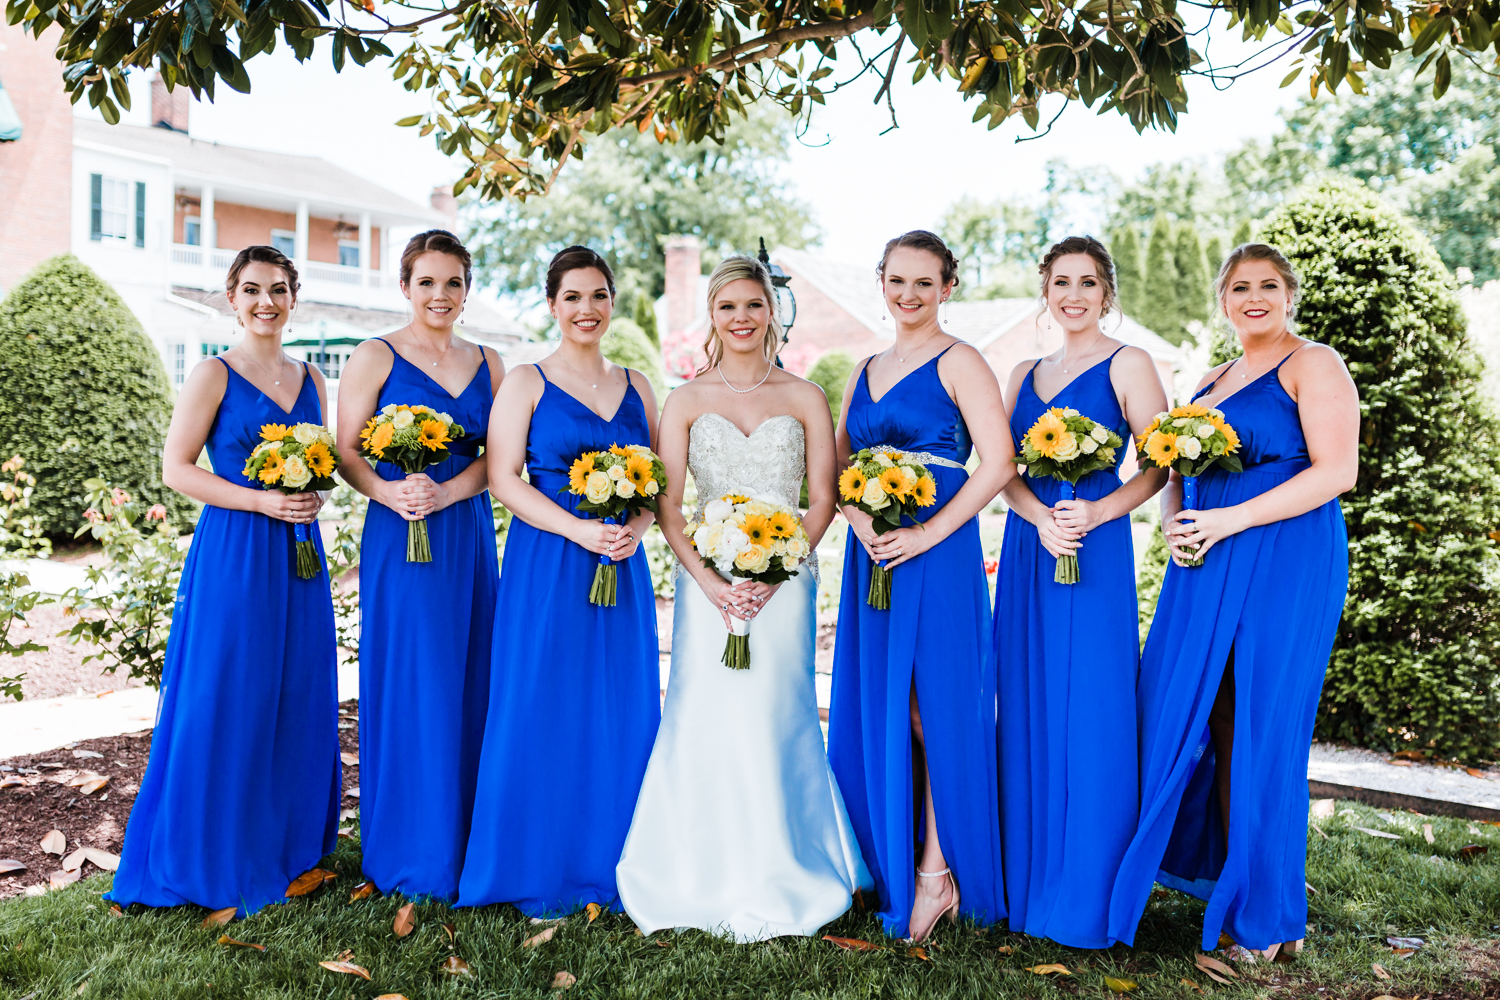 royal blue bridesmaids dresses - top cinematographer in Maryland